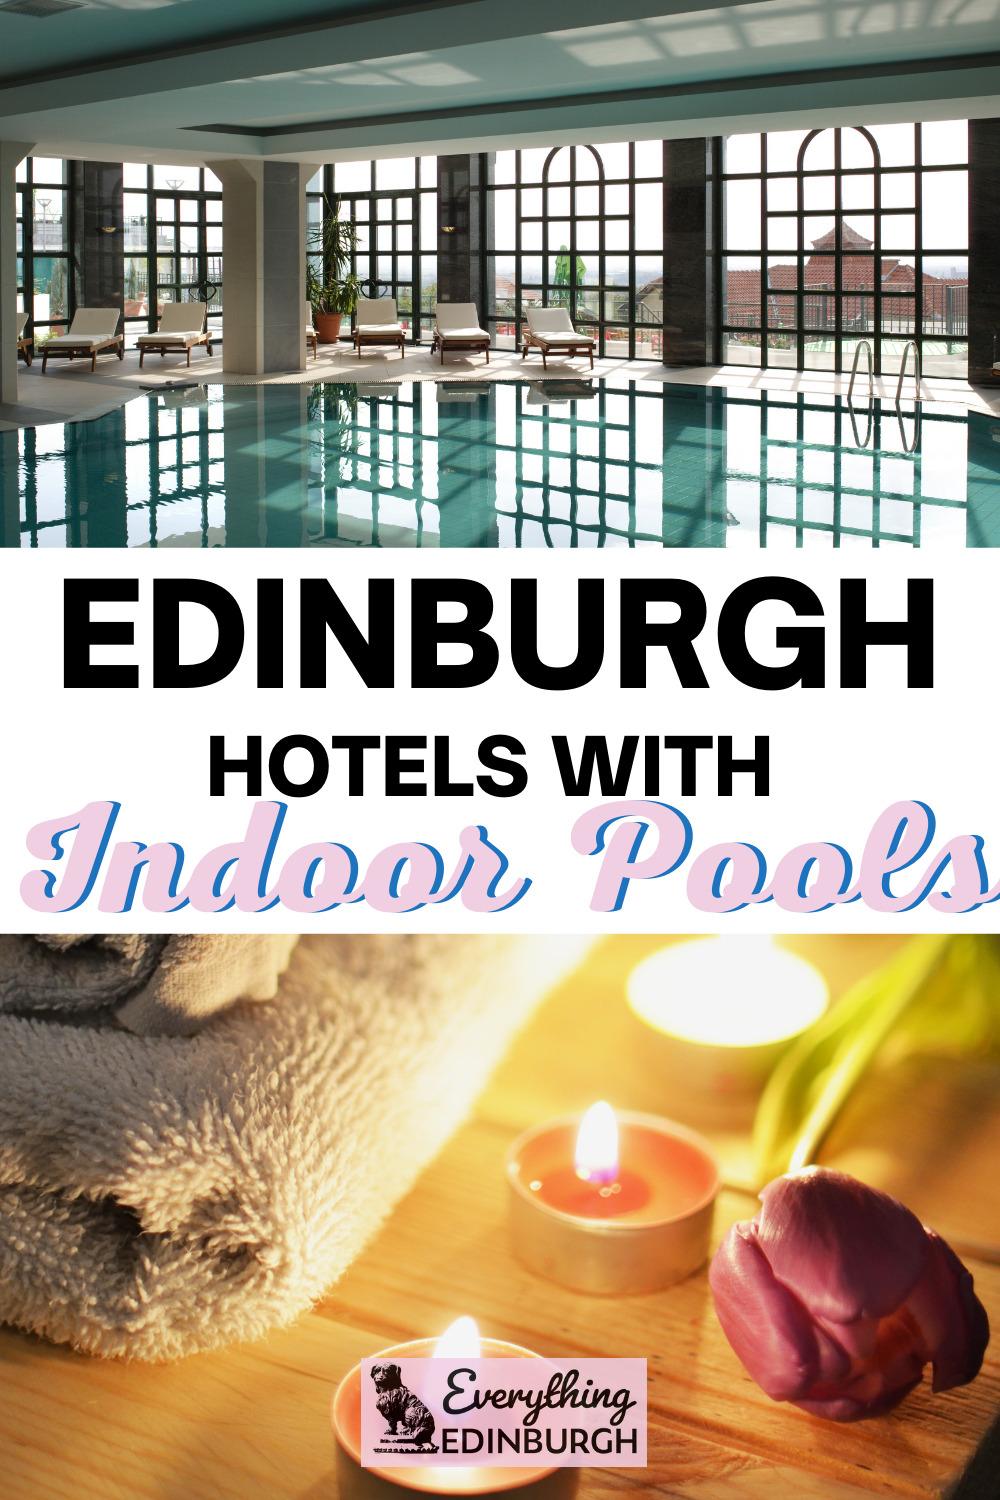 Looking for an Edinburgh hotel with a pool? This guide details the best hotels in Edinburgh with heated indoor pools and spa facilities so all you need to do is remember your swimsuit!